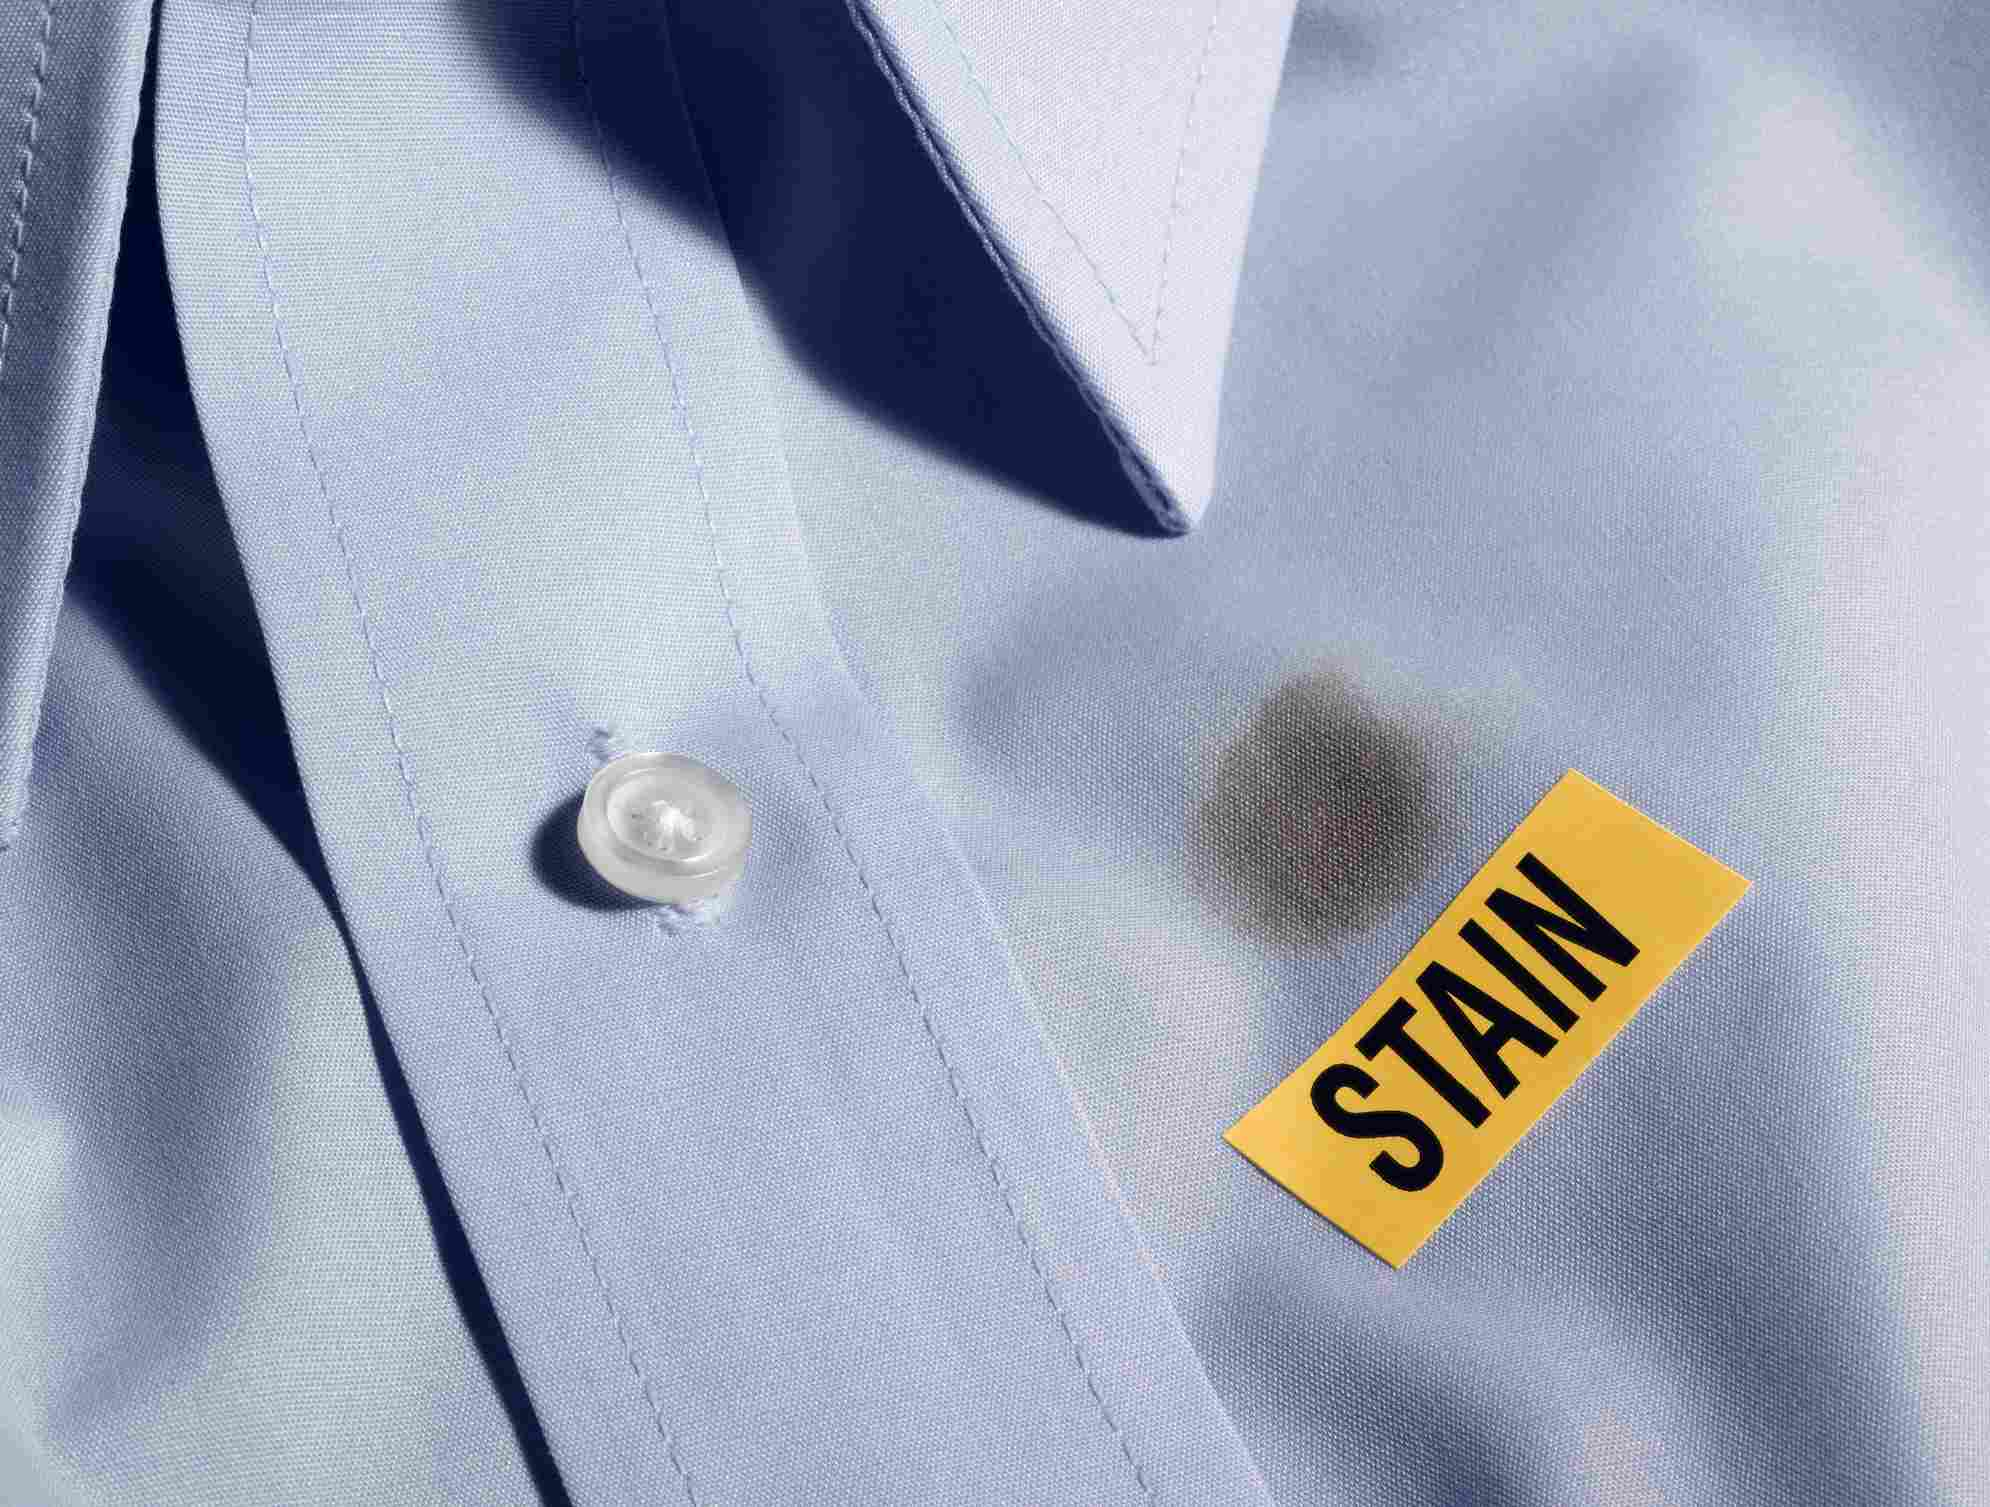 How to remove mildew stains from clothes